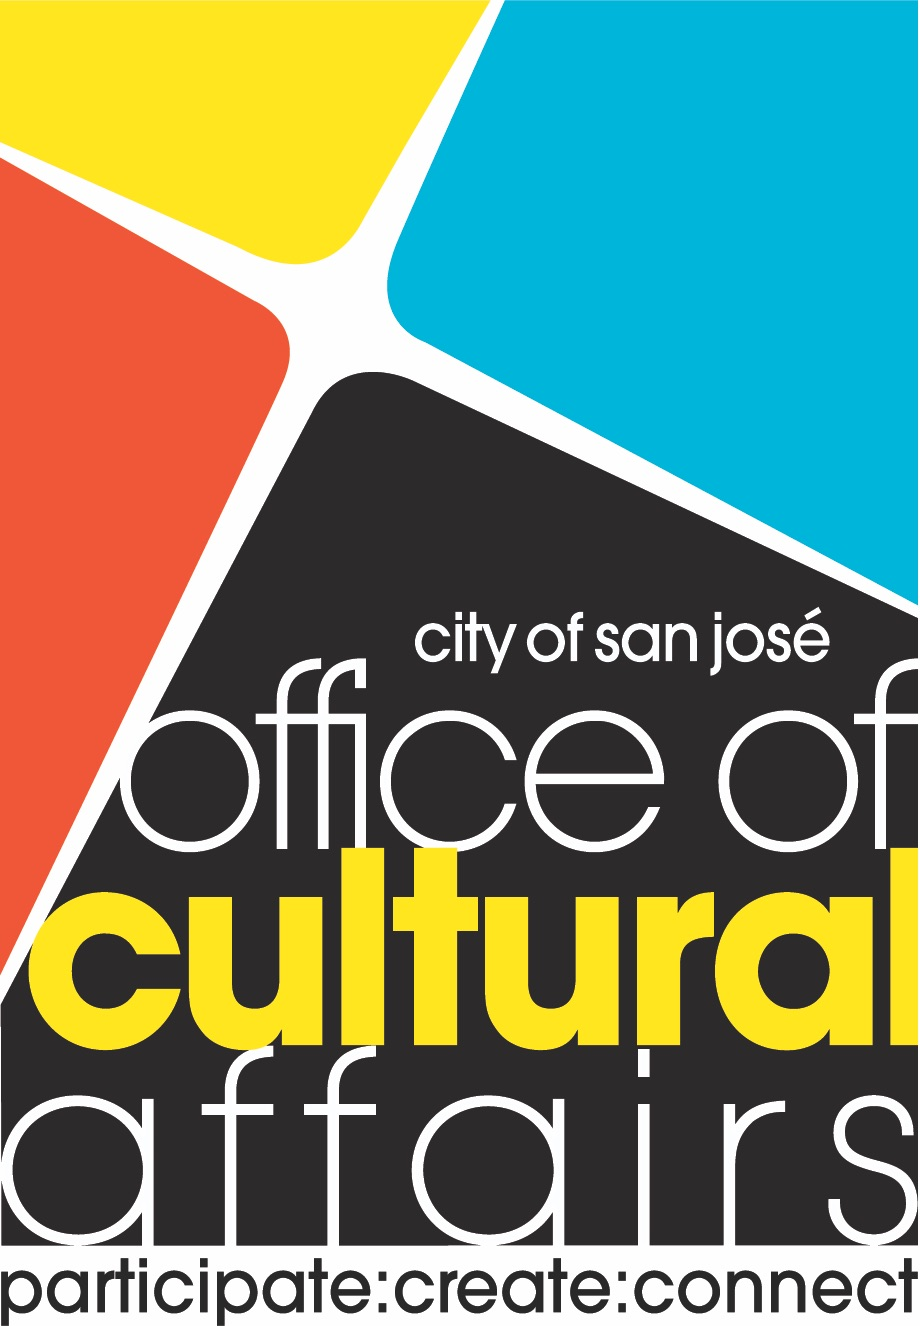 City of San Jose Office of Cultural Affairs logo